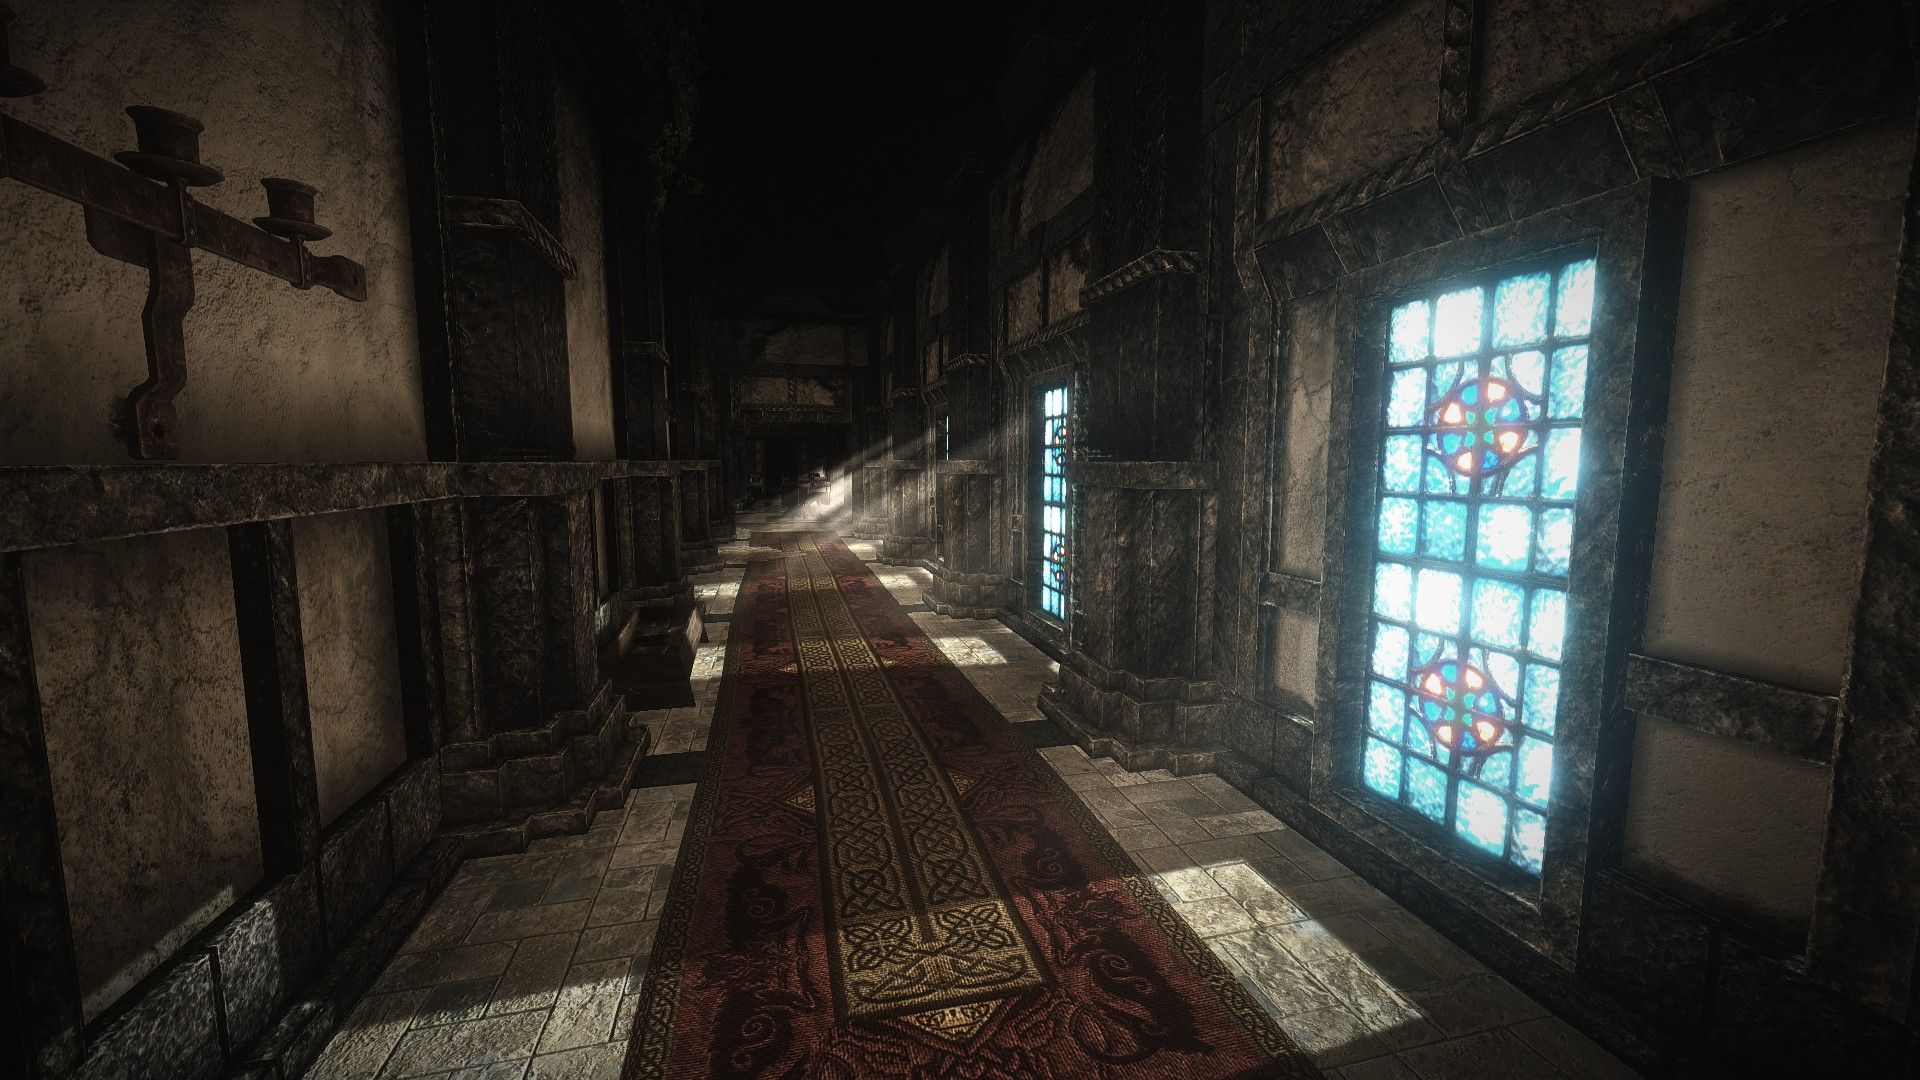 Only OG Skyrim players know this room